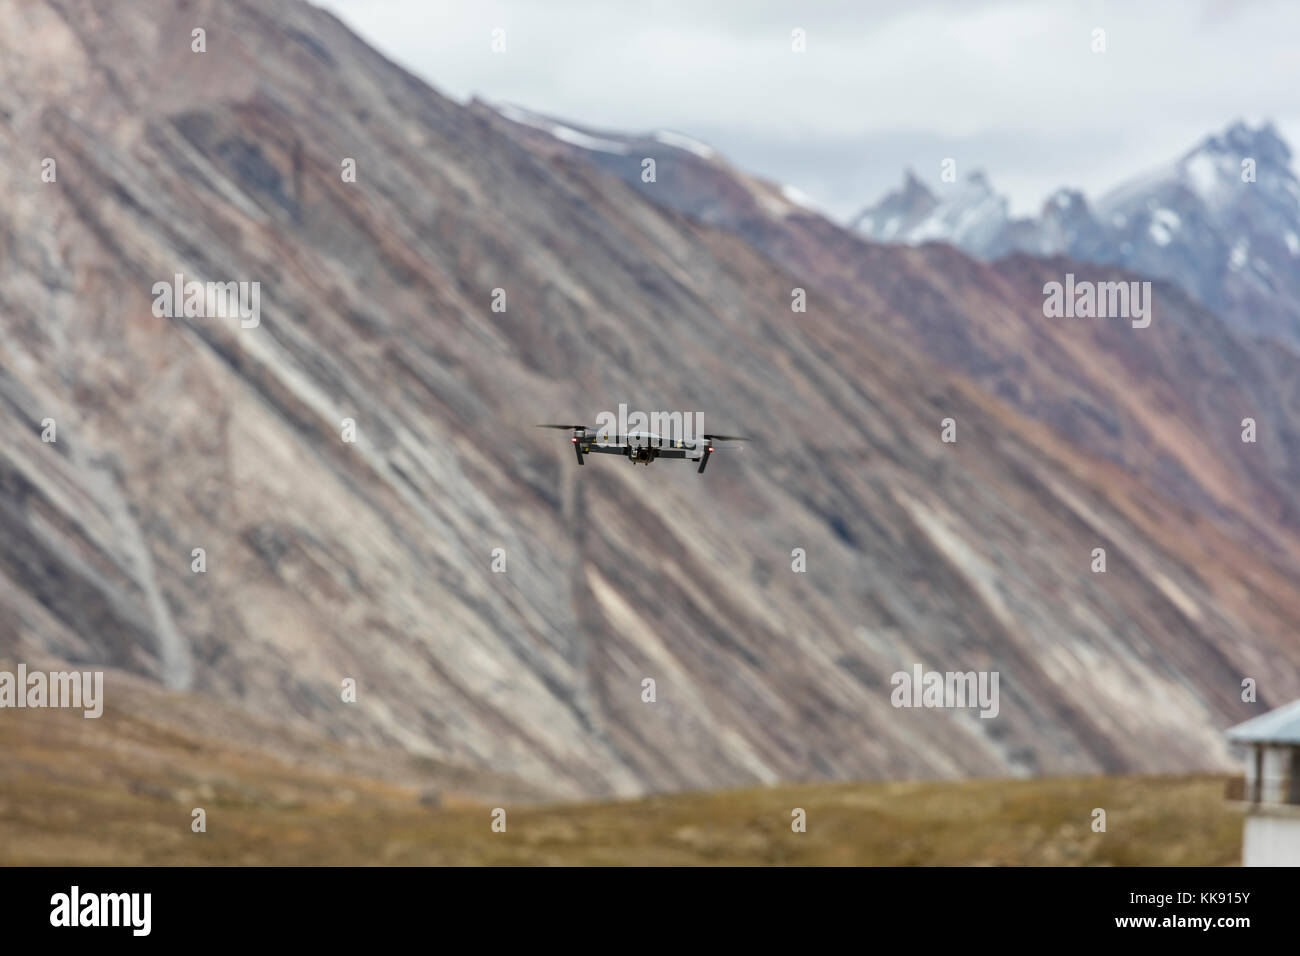 A drone at the PENZILA PASS at 4400 meters which is crossed to reach the Stod River Valley - ZANSKAR, LADAKH, INDIA - Stock Image